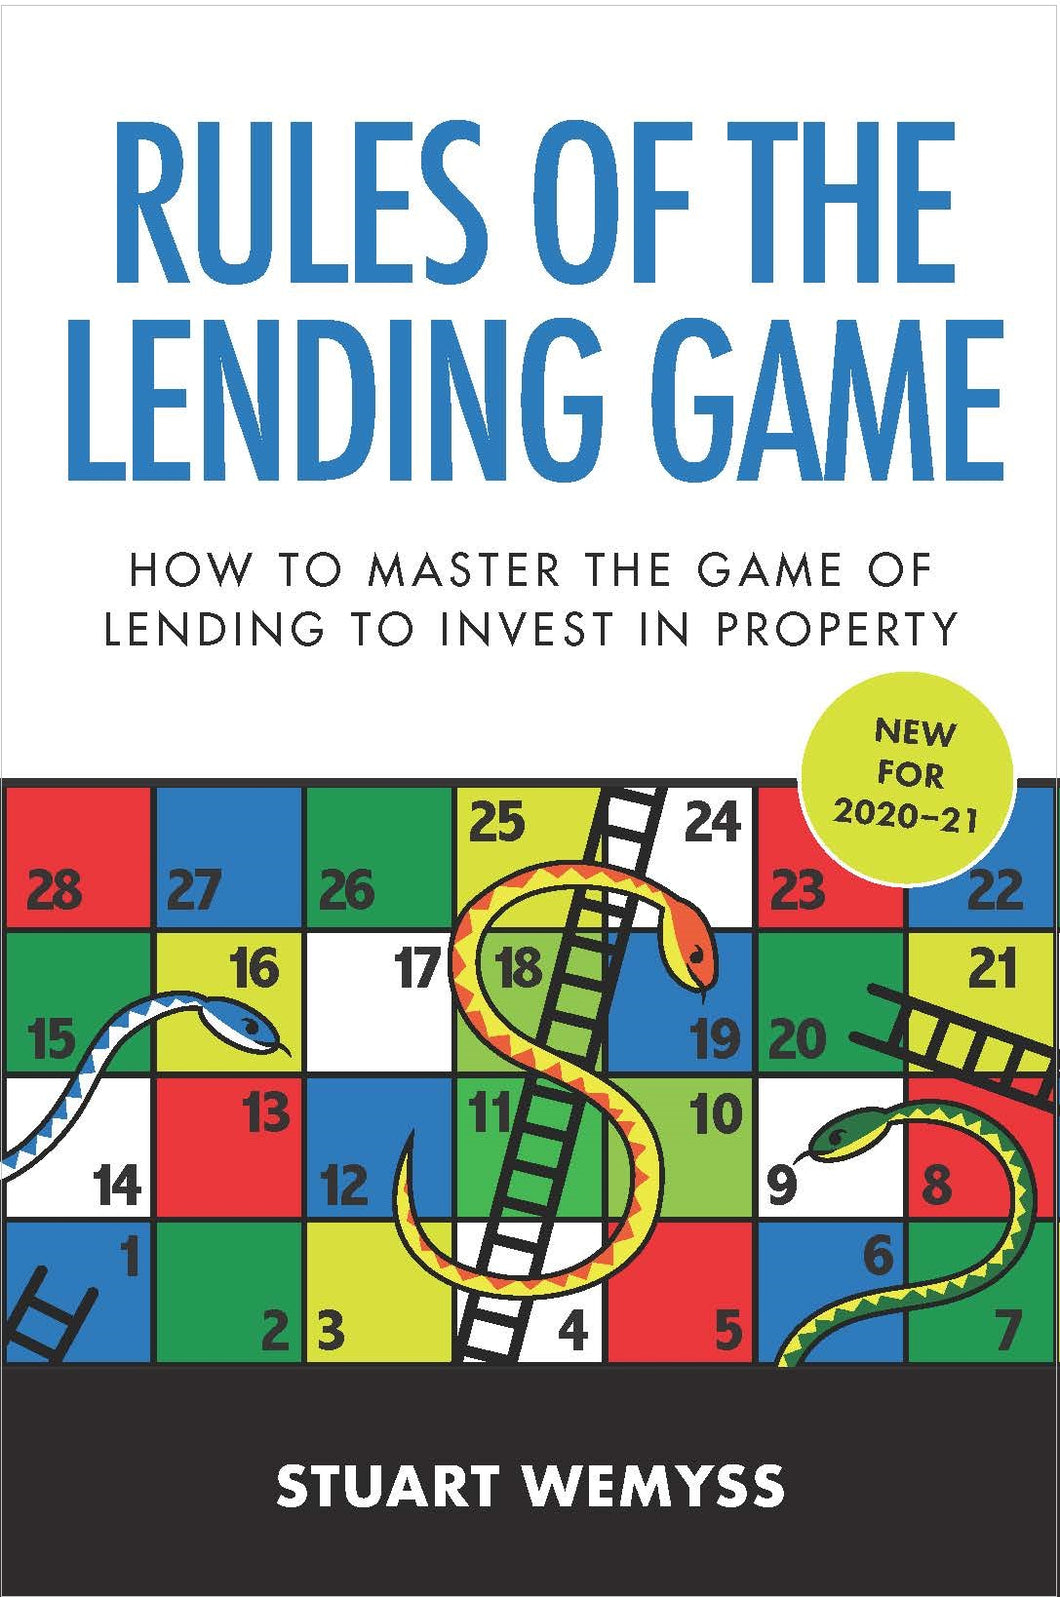 Rules of the Lending Game<br><i><small>by Stuart Wemyss</i></small>